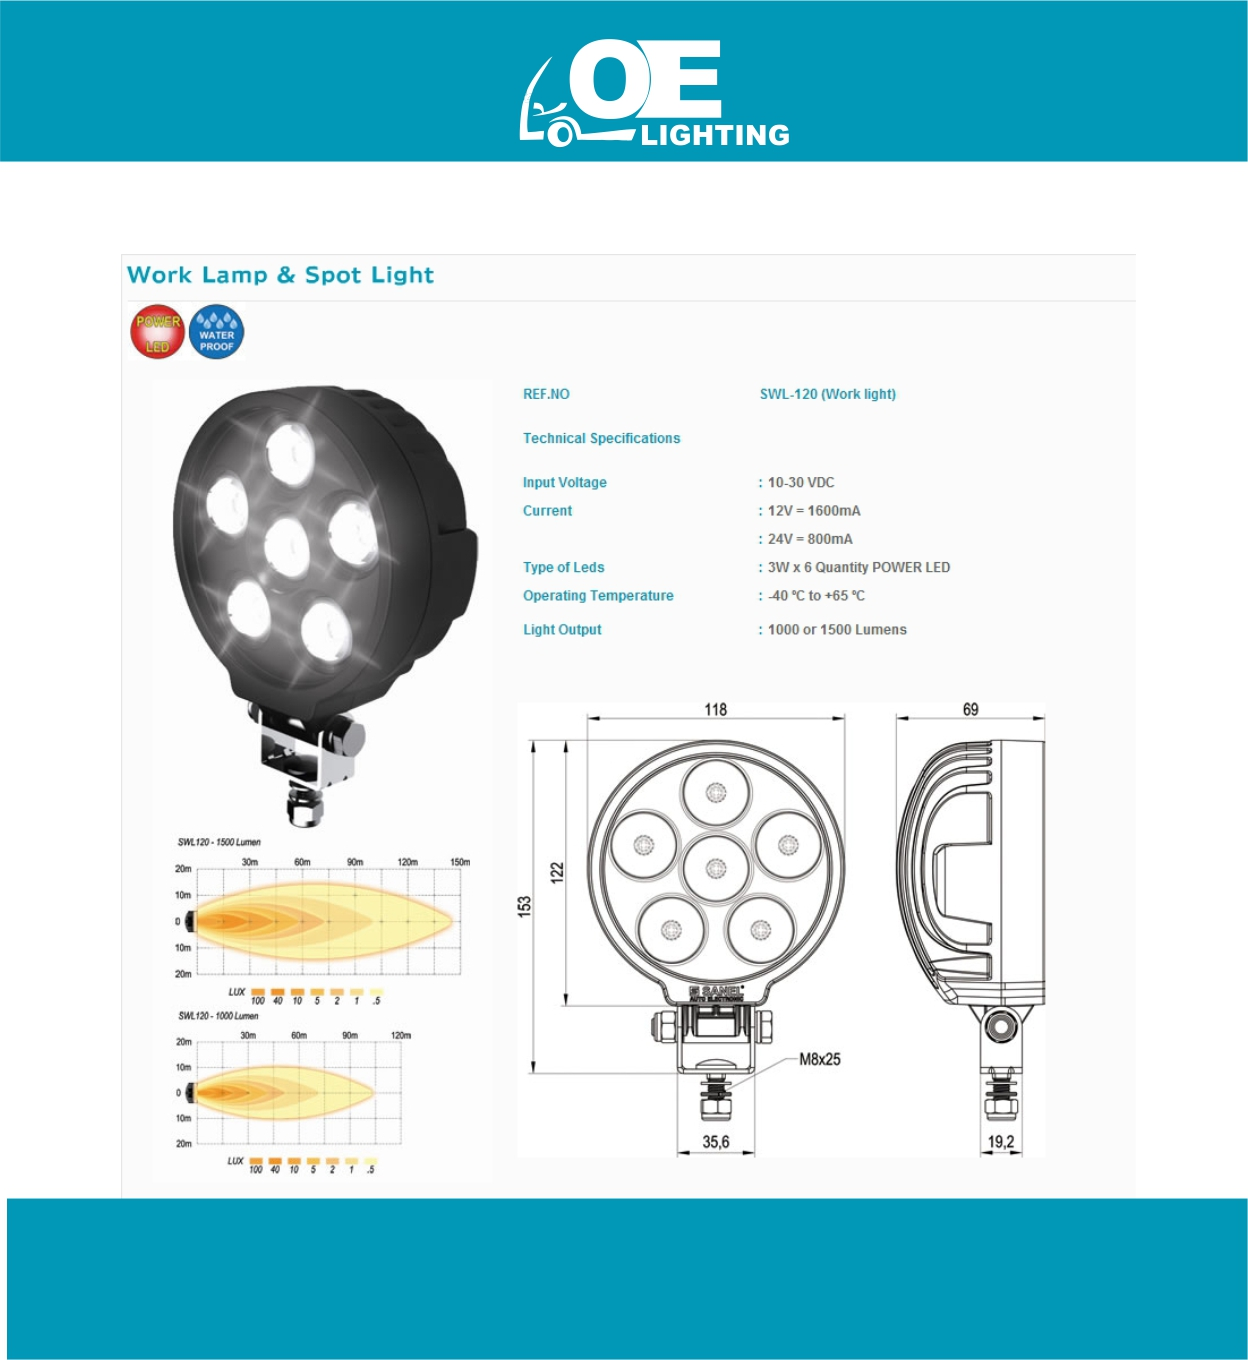 OE lighting 10